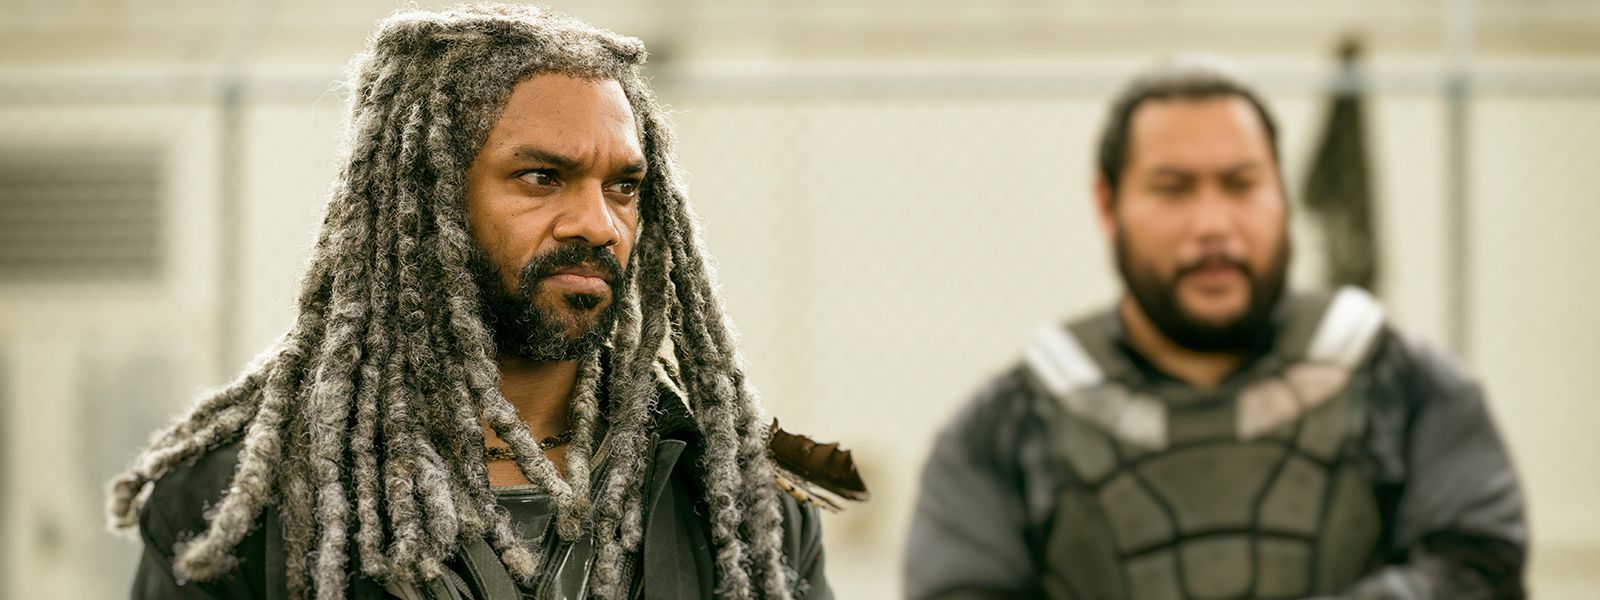 the-walking-dead-episode-702-ezekiel-payton-post-1600x600